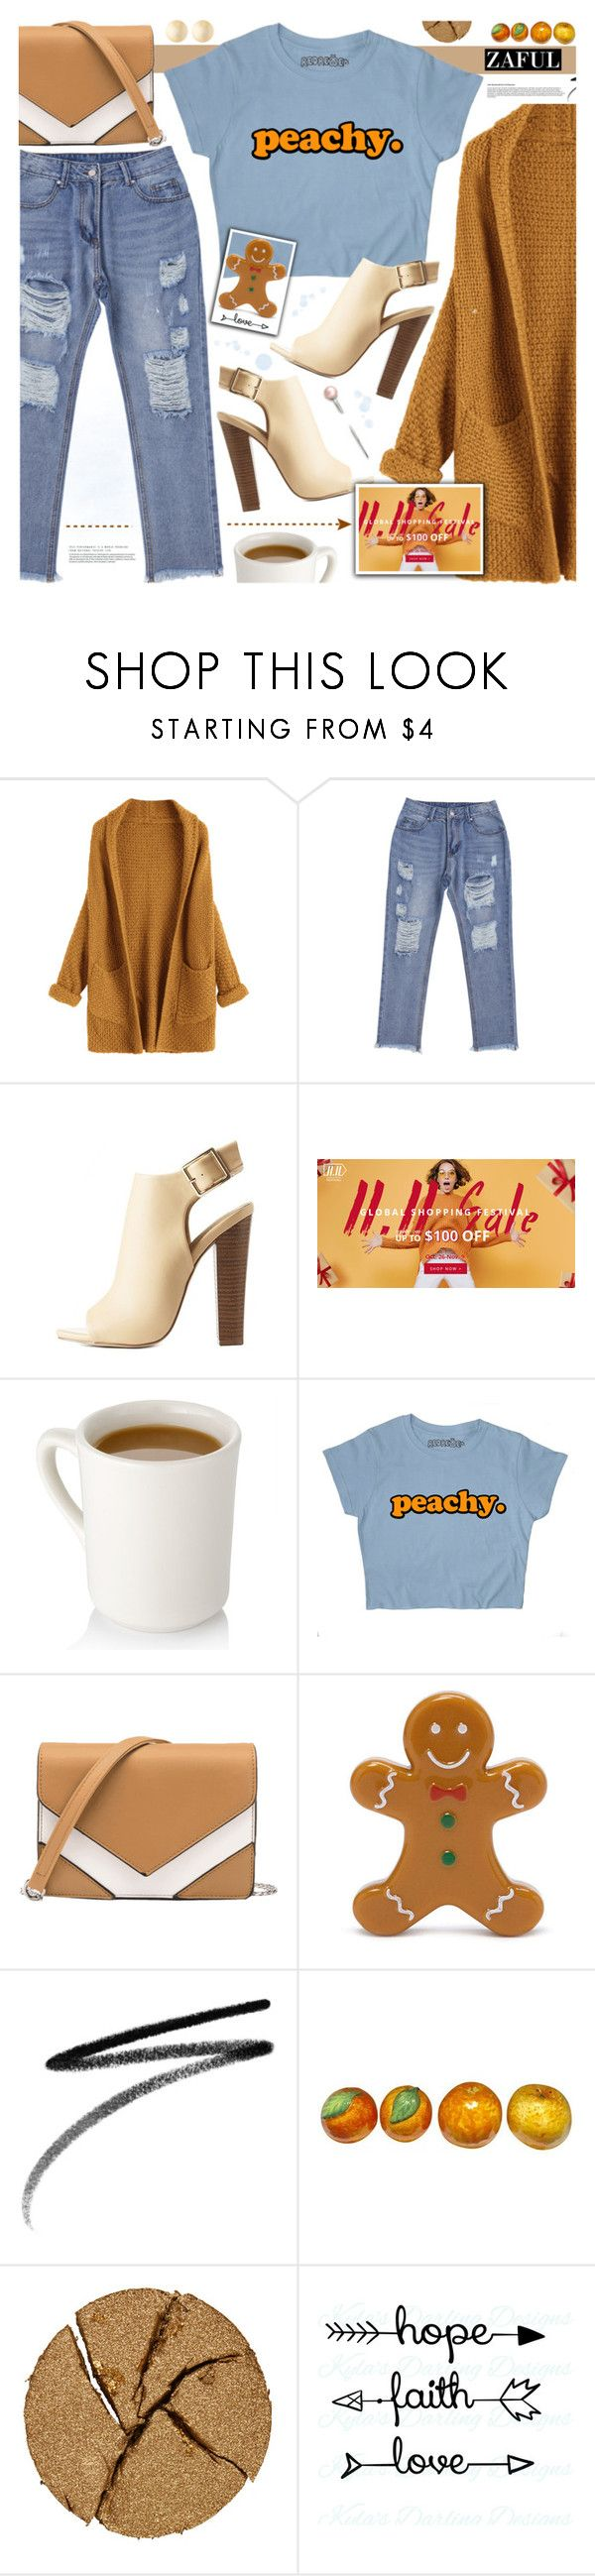 """""""Sale Shopping Festival-ZAFUL"""" by tinkabella222 ❤ liked on Polyvore featuring Mark & Maddux, Forever 21, Clé de Peau Beauté, Pat McGrath, Alexis Bittar, rippedjeans, casuallook, browncardigan, zaful and Beigebag"""